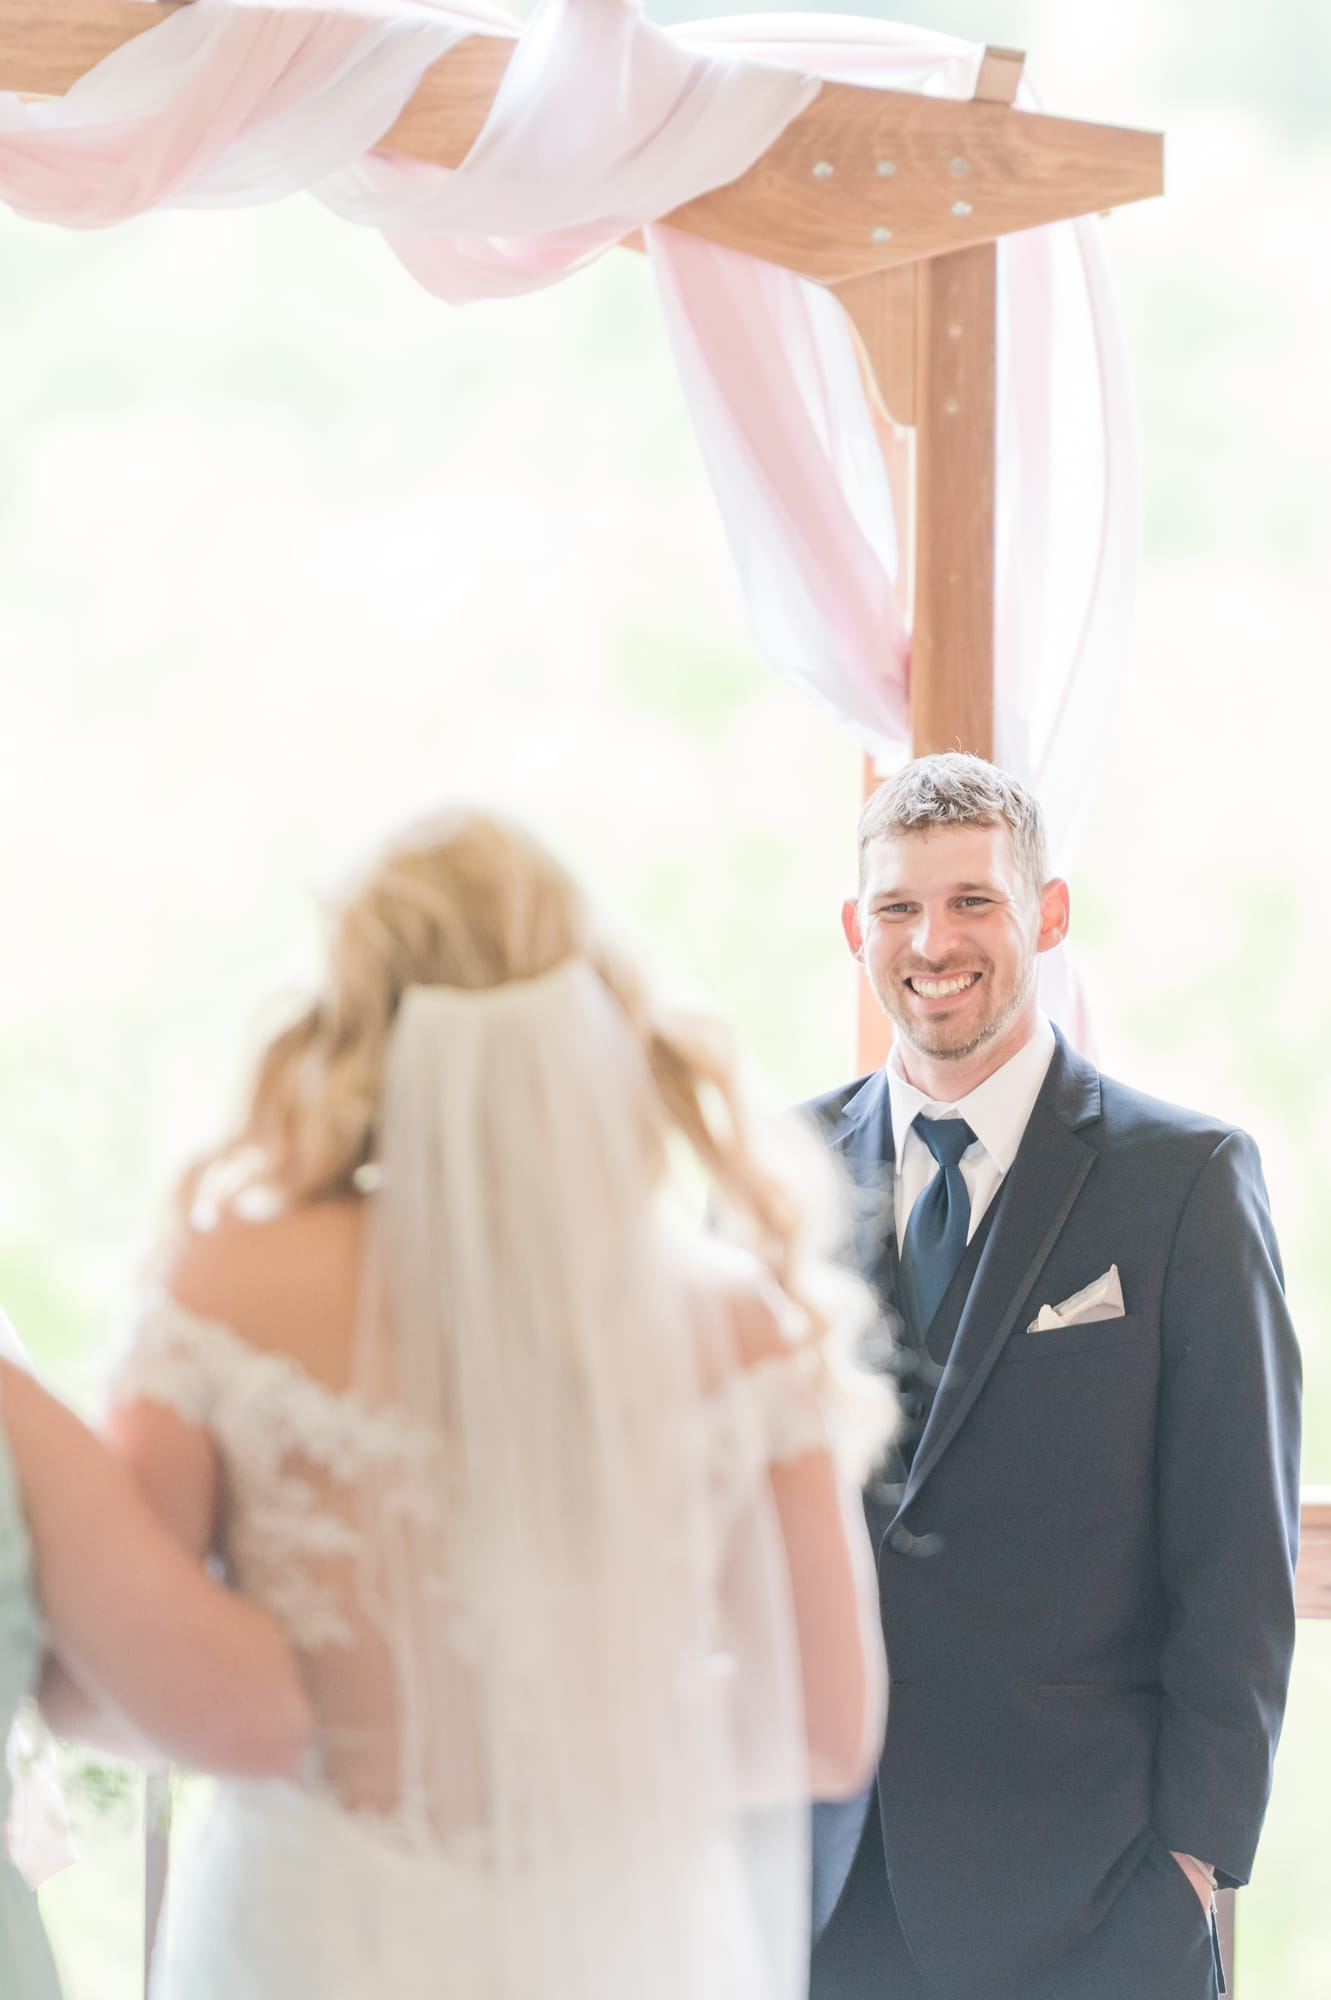 Groom seeing bride for the first time at Rolling Rails Lodge wedding ceremony